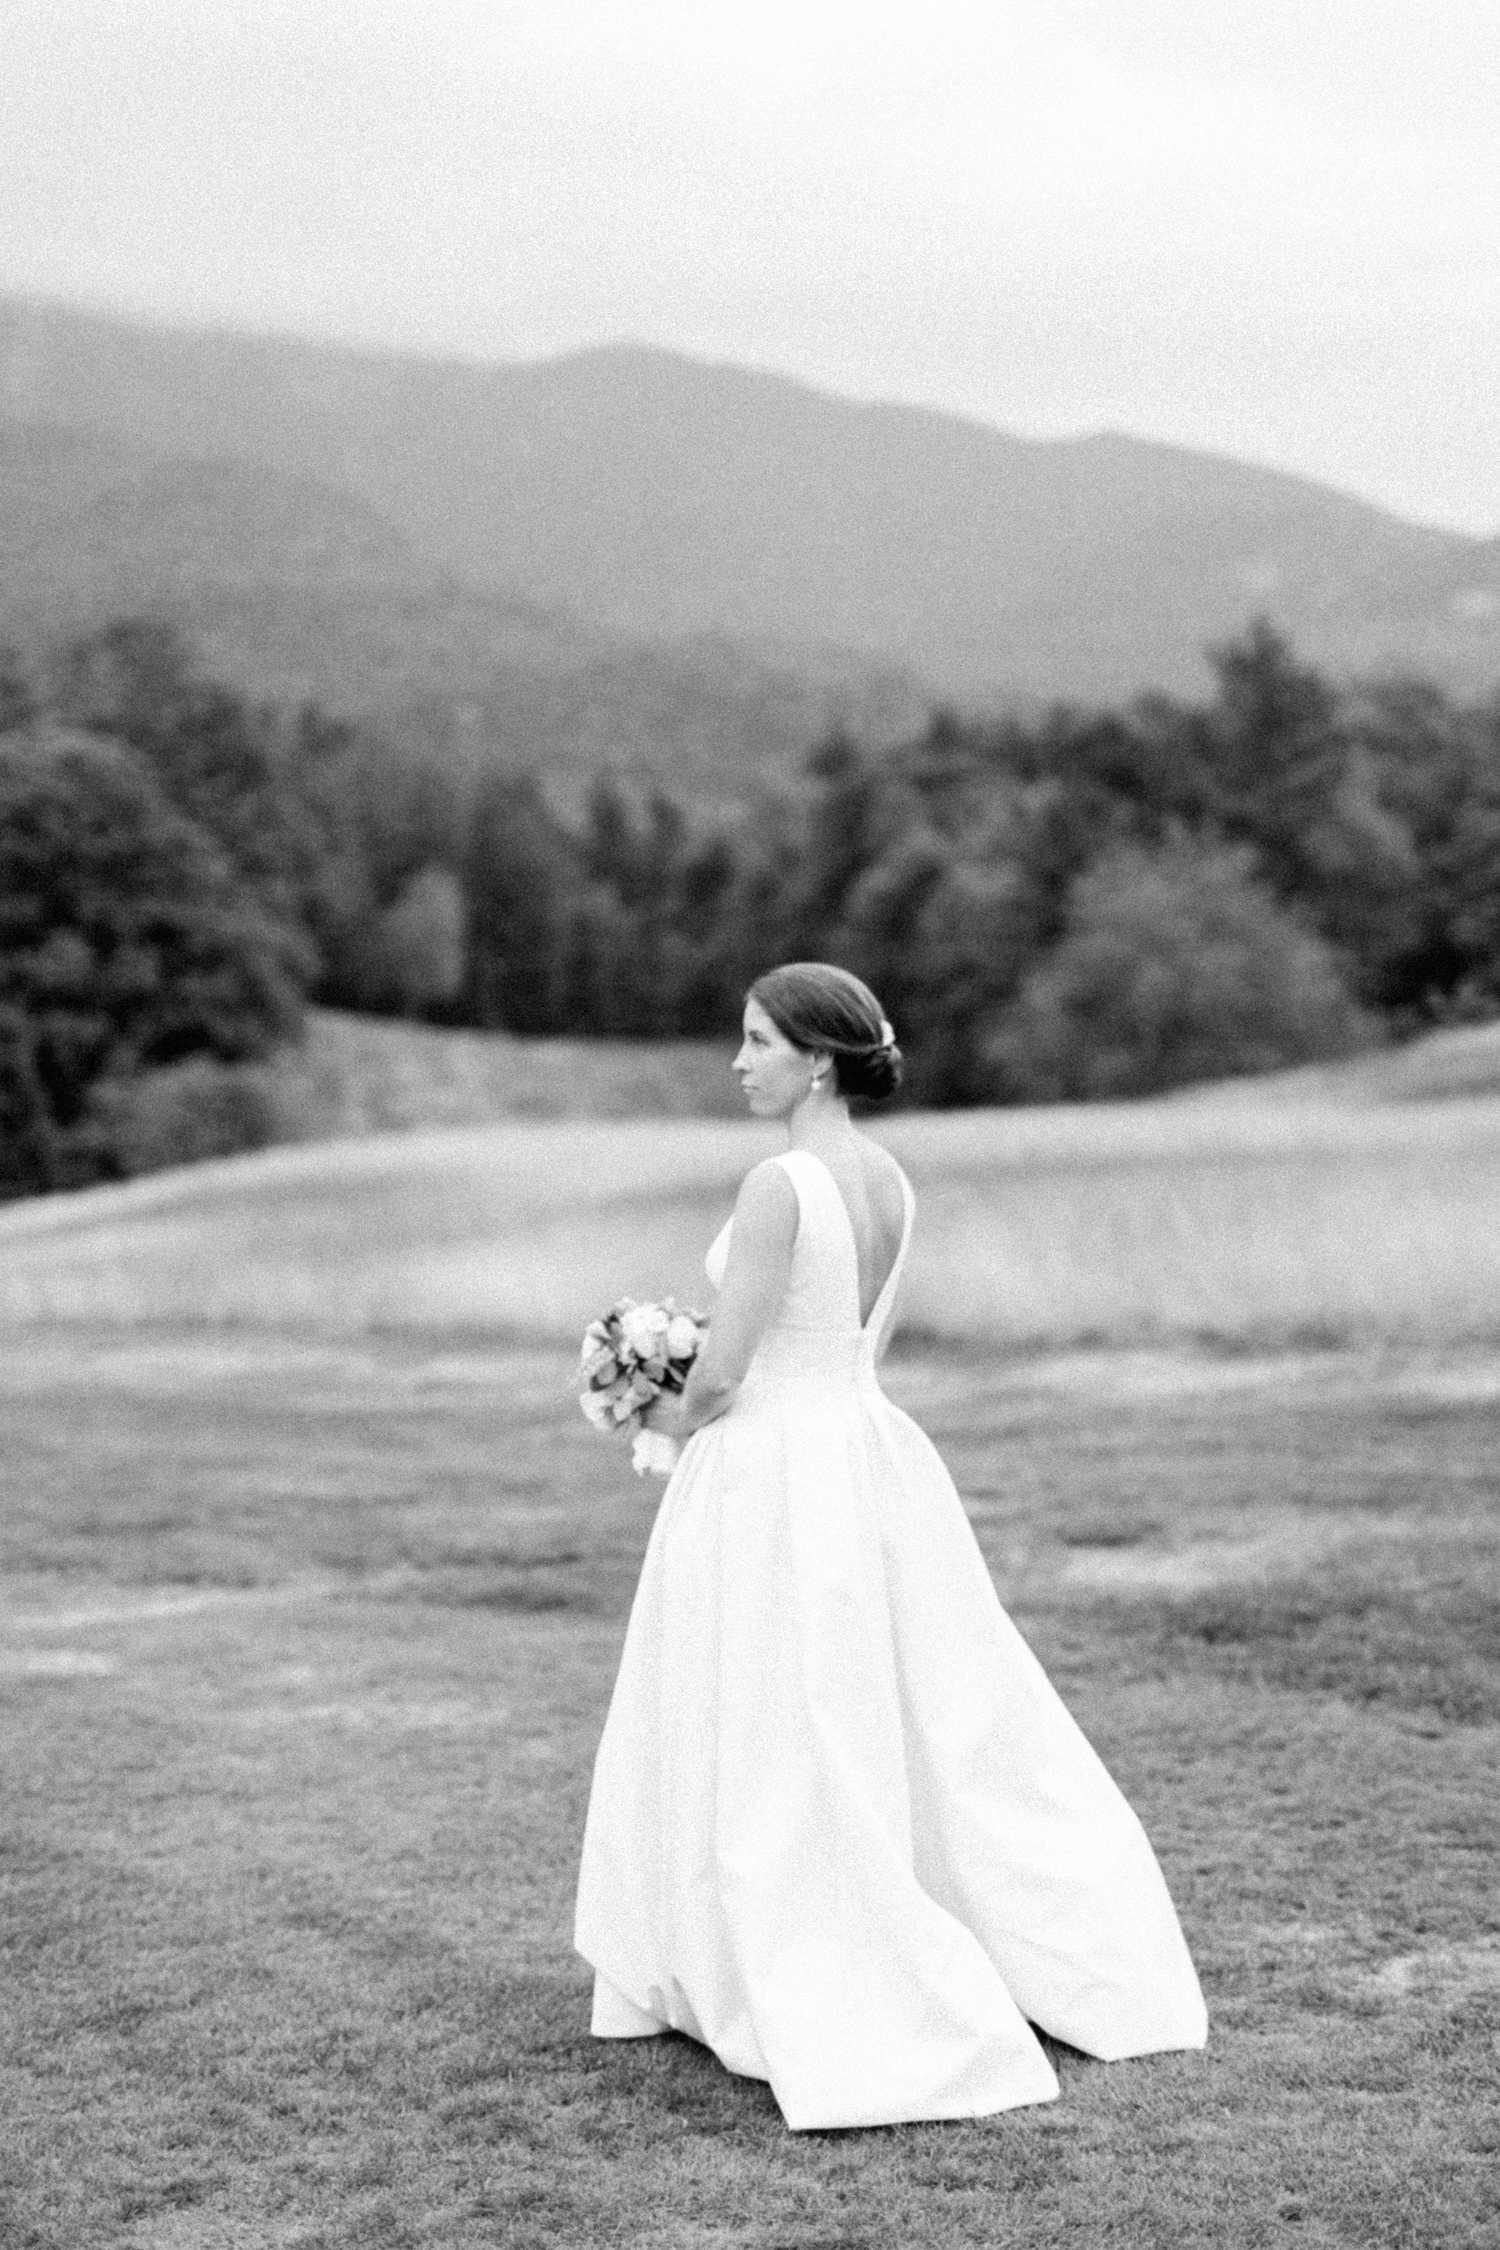 Adirondacks_Fine Art Wedding Photographer_Meg Haley Photographs_068.jpg